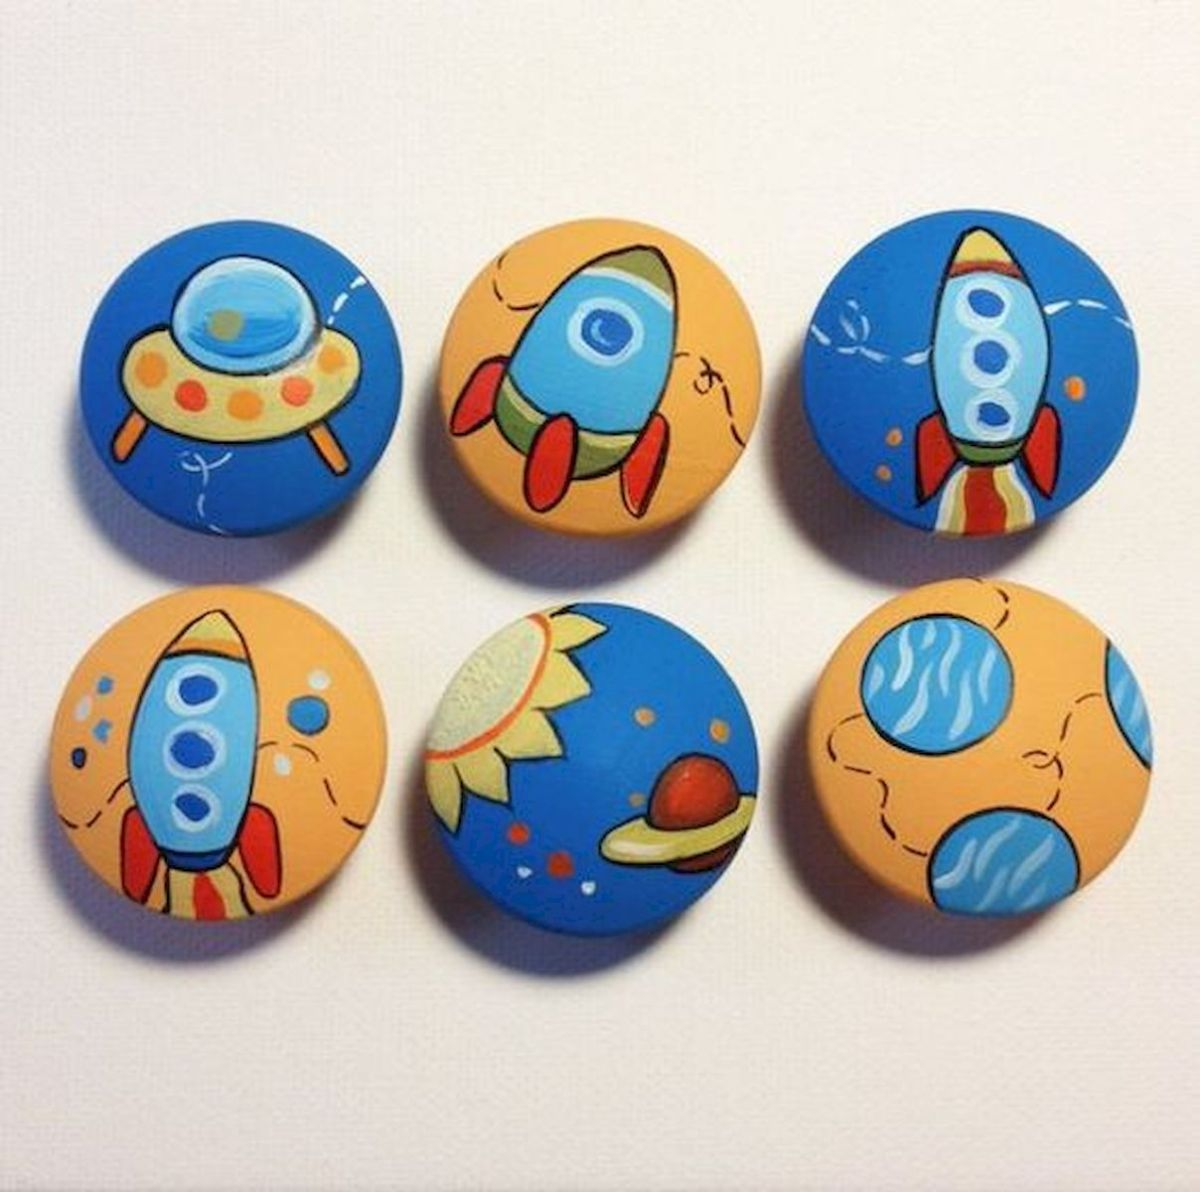 52 Best DIY Painted Rocks Remodel Ideas Perfect For Beginners (56)